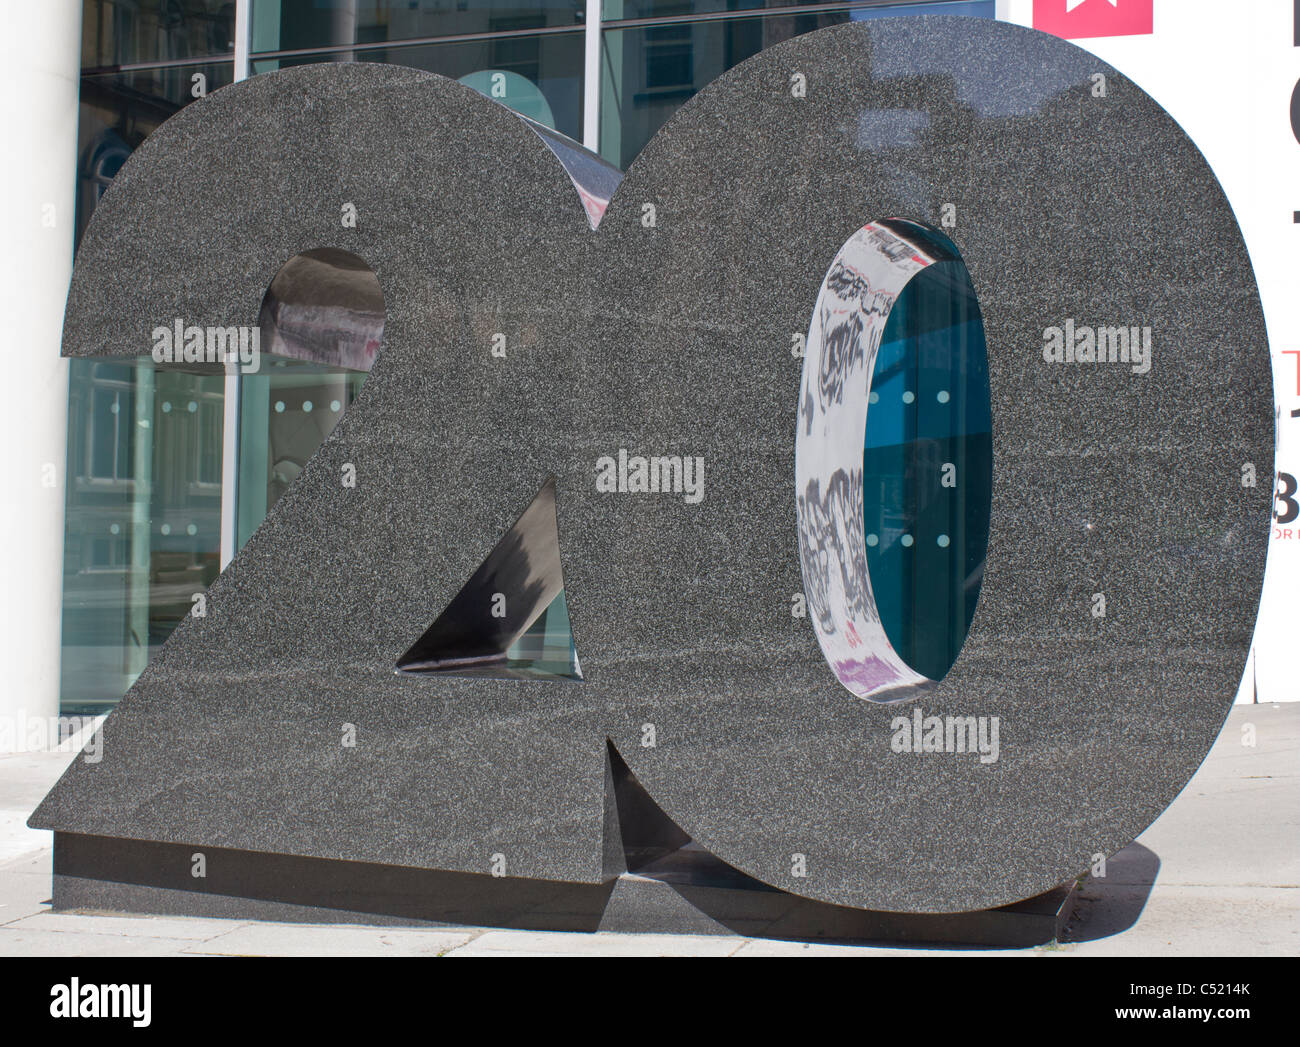 Large sculpture outside a building noting the building number, 20 Stock Photo